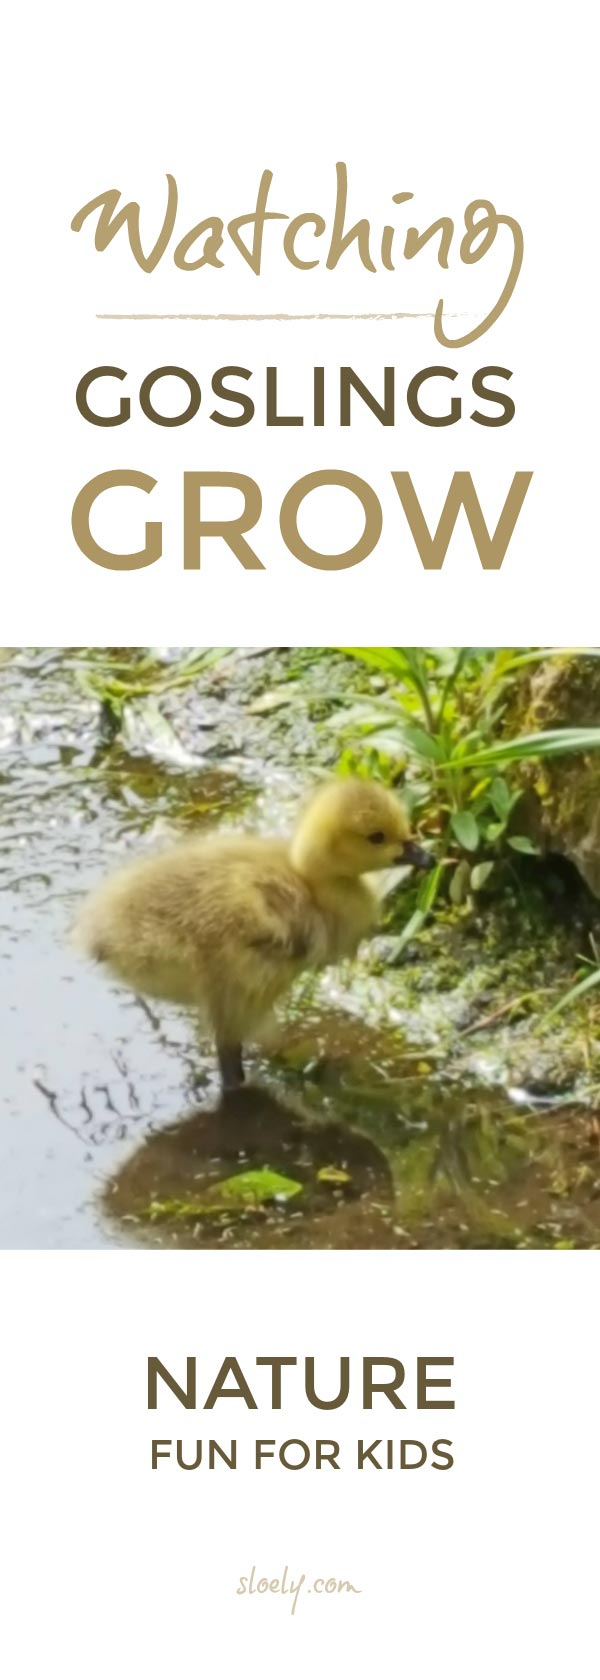 Watching goslings grow is a wonderful opportunity for children to observe and journal growth in young animals #nature #naturejournal #naturelover #birds #science #STEAM